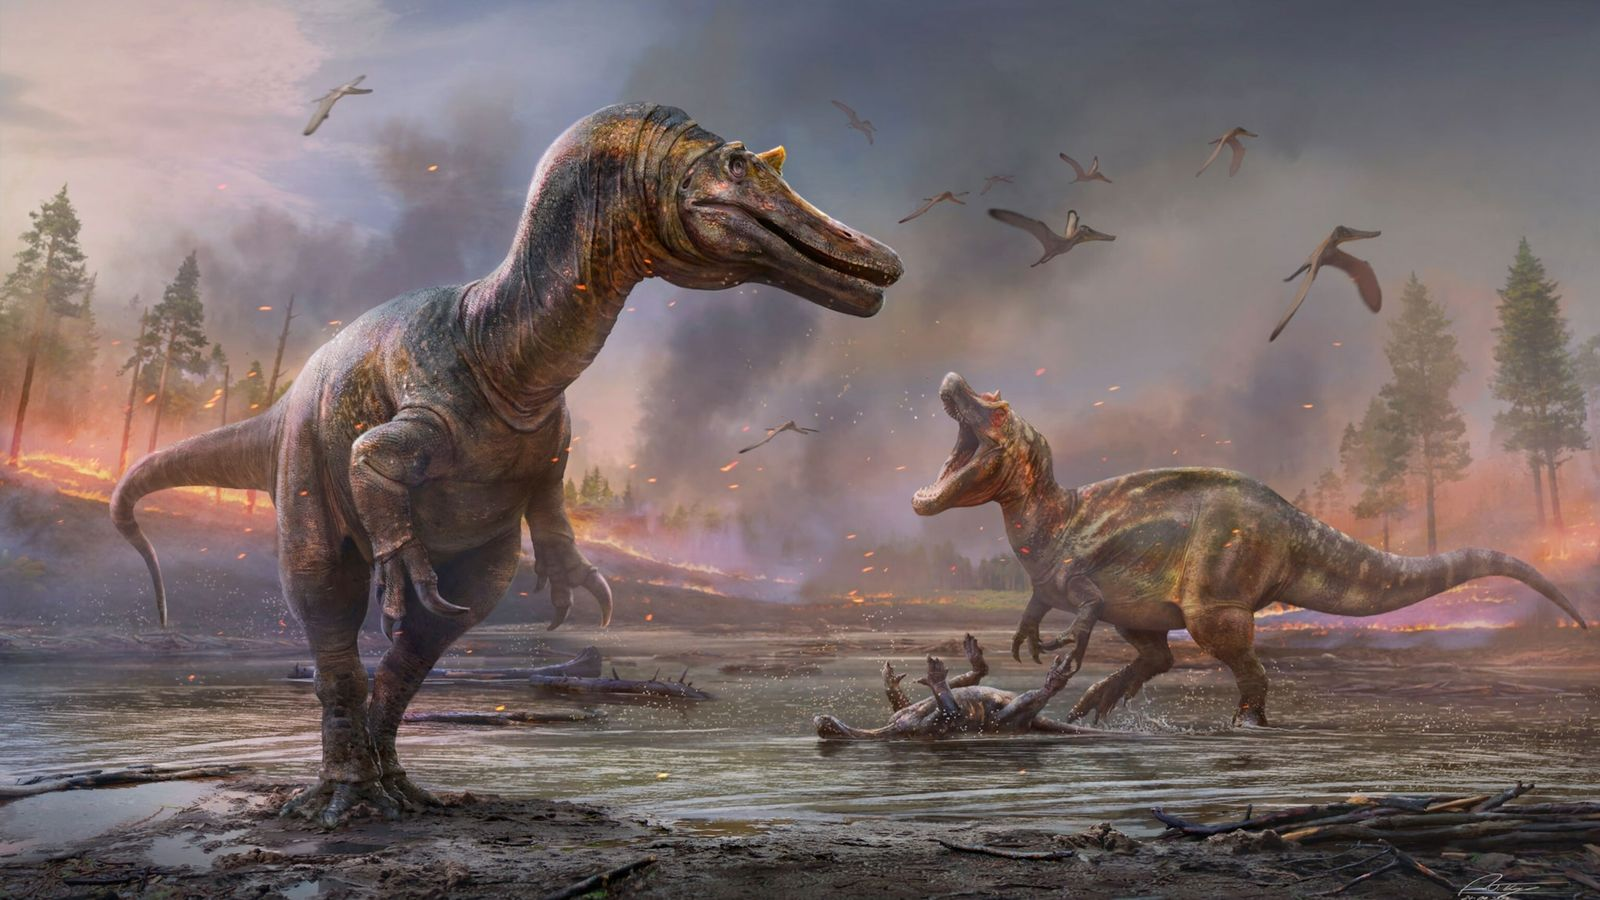 In this artist's depiction, wildfire smoke clouds the skies above a Cretaceous Isle of Wight, providing ...